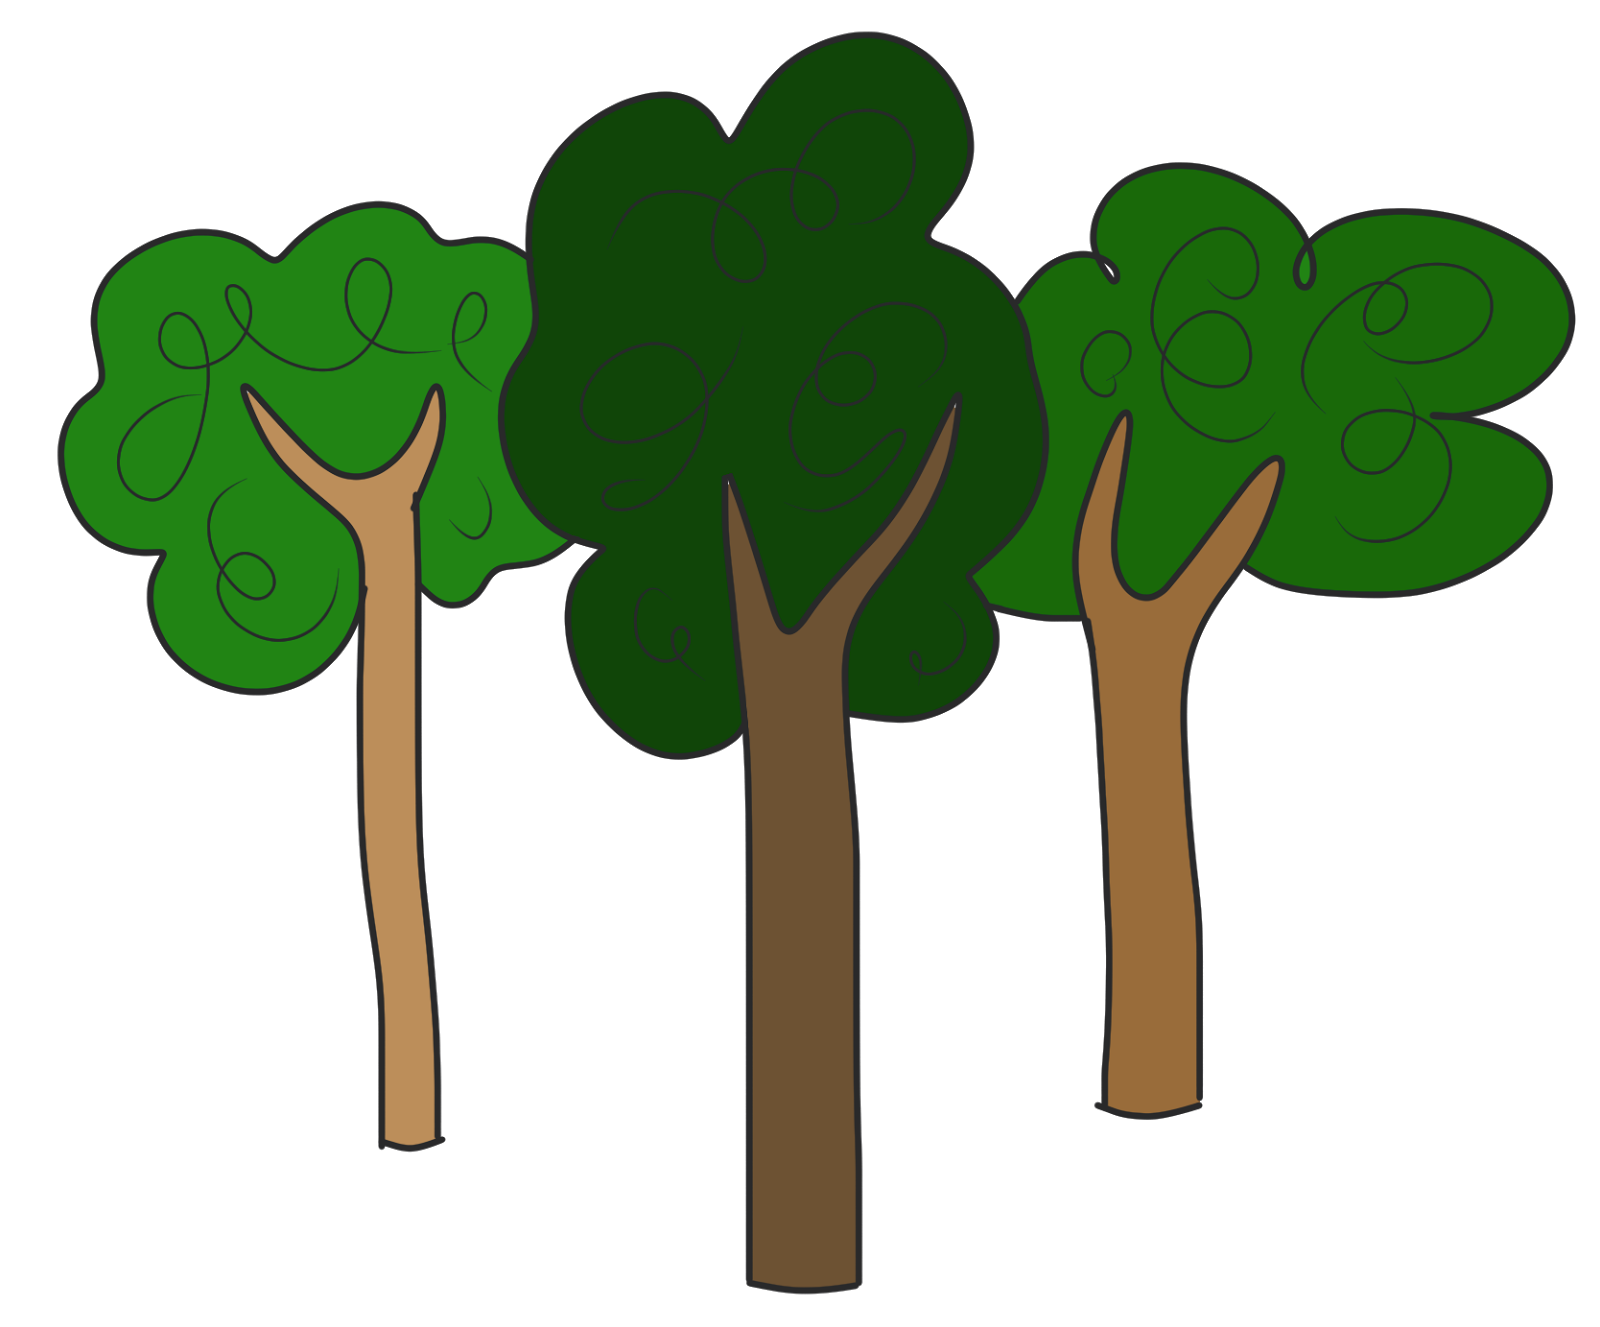 Clipart Trees - ClipArt Best